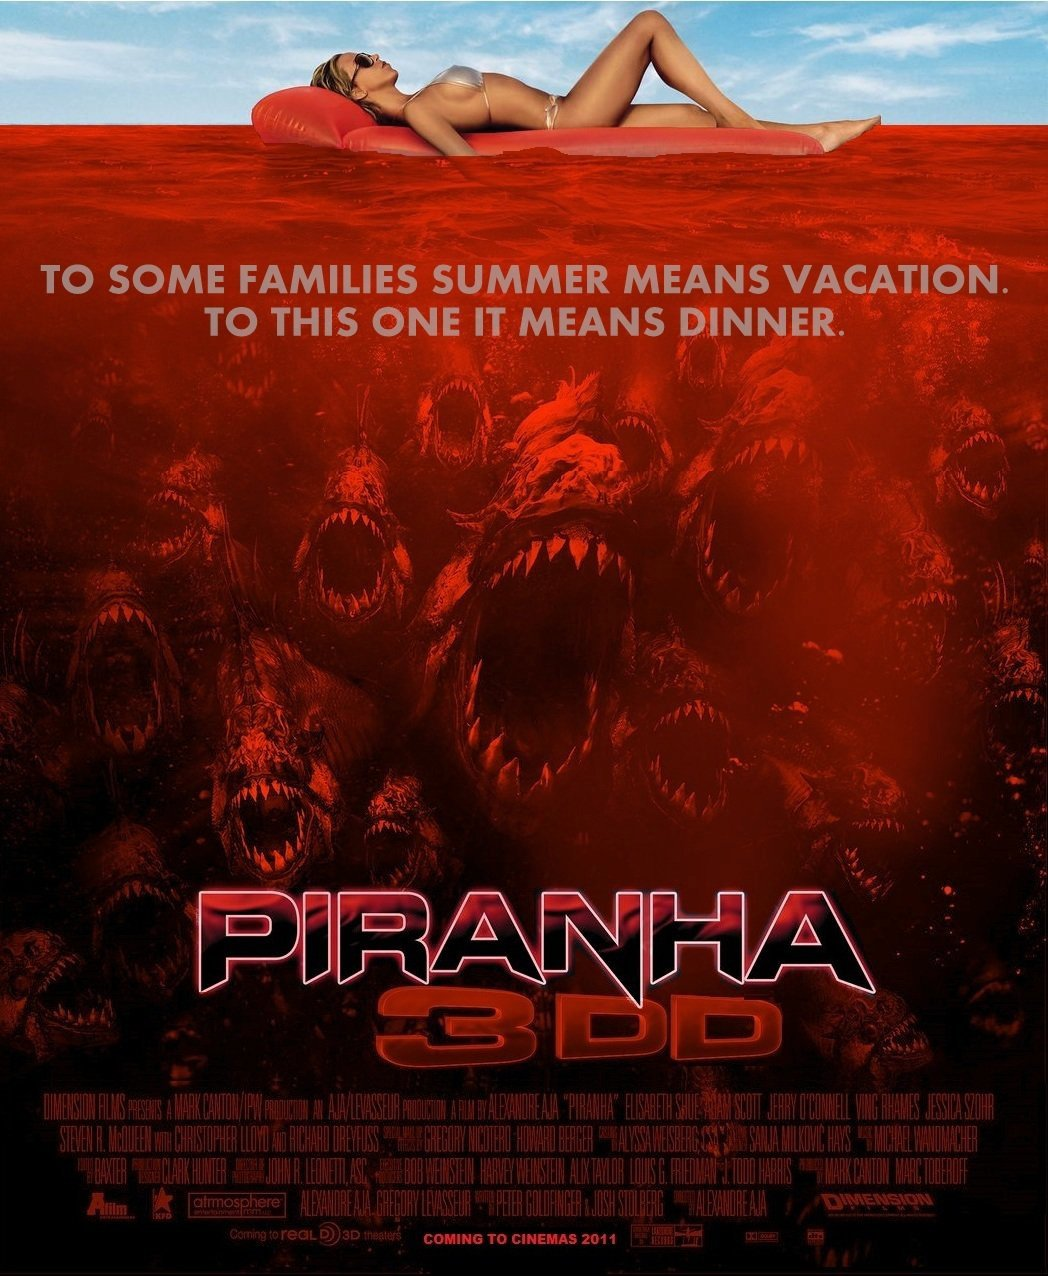 Piranha movie 3dd